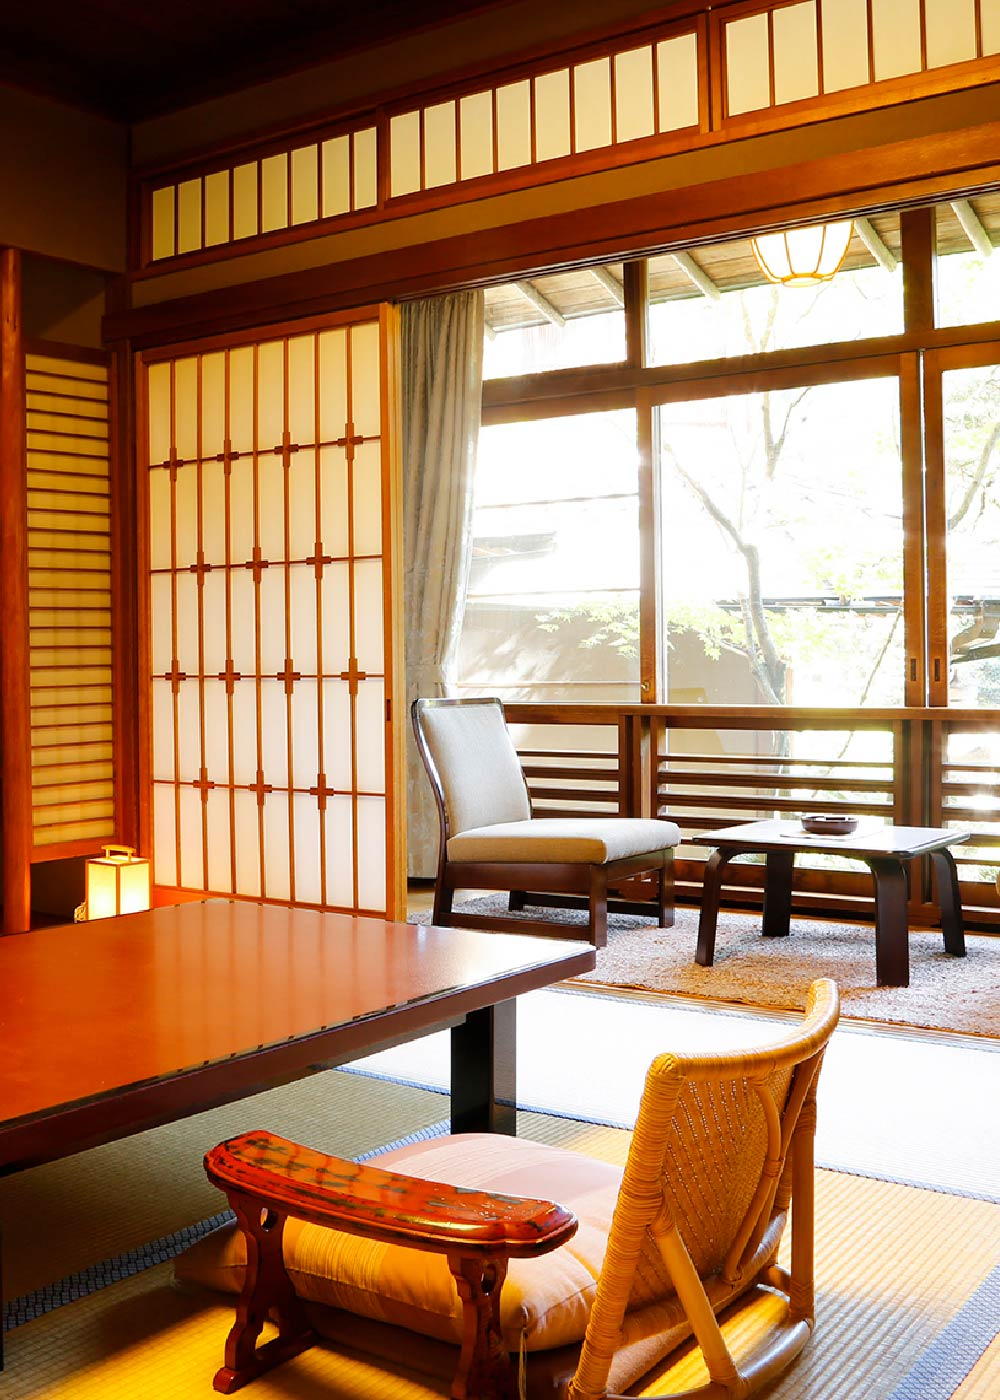 The inside of a traditional ryokan room